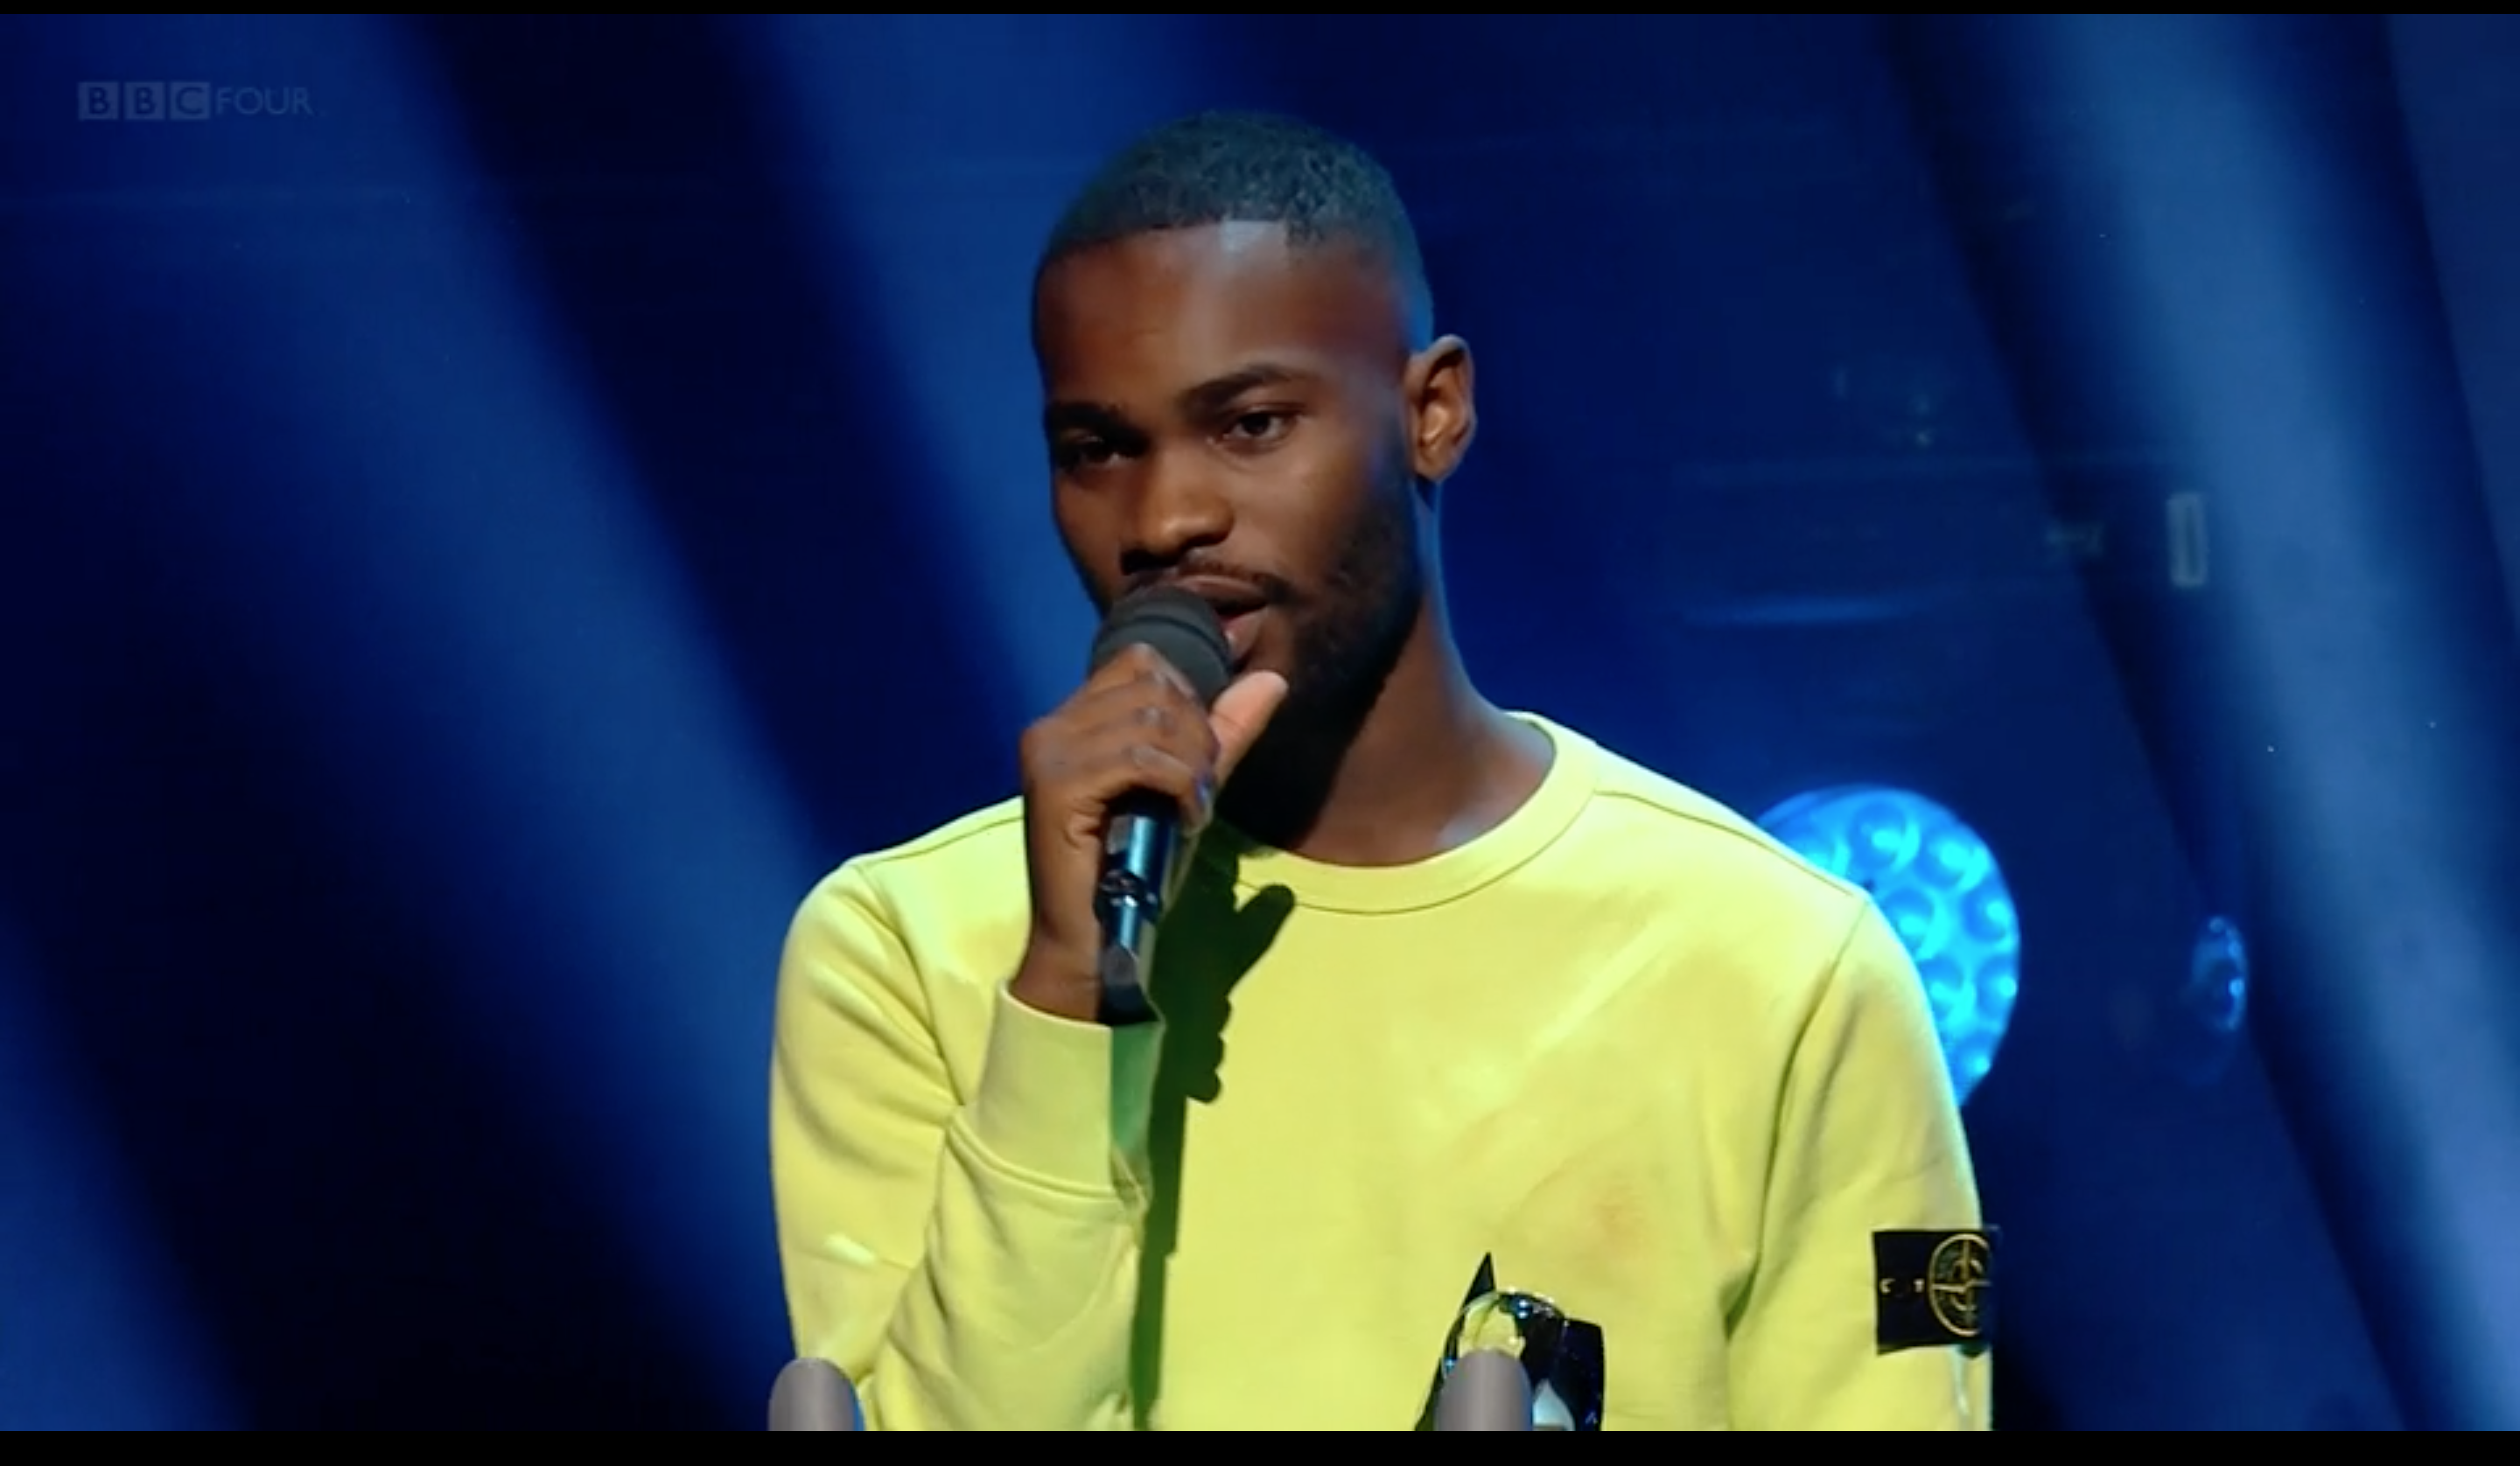 Mercury Prize 2019 reveals Top Boy star as winner live on BBC